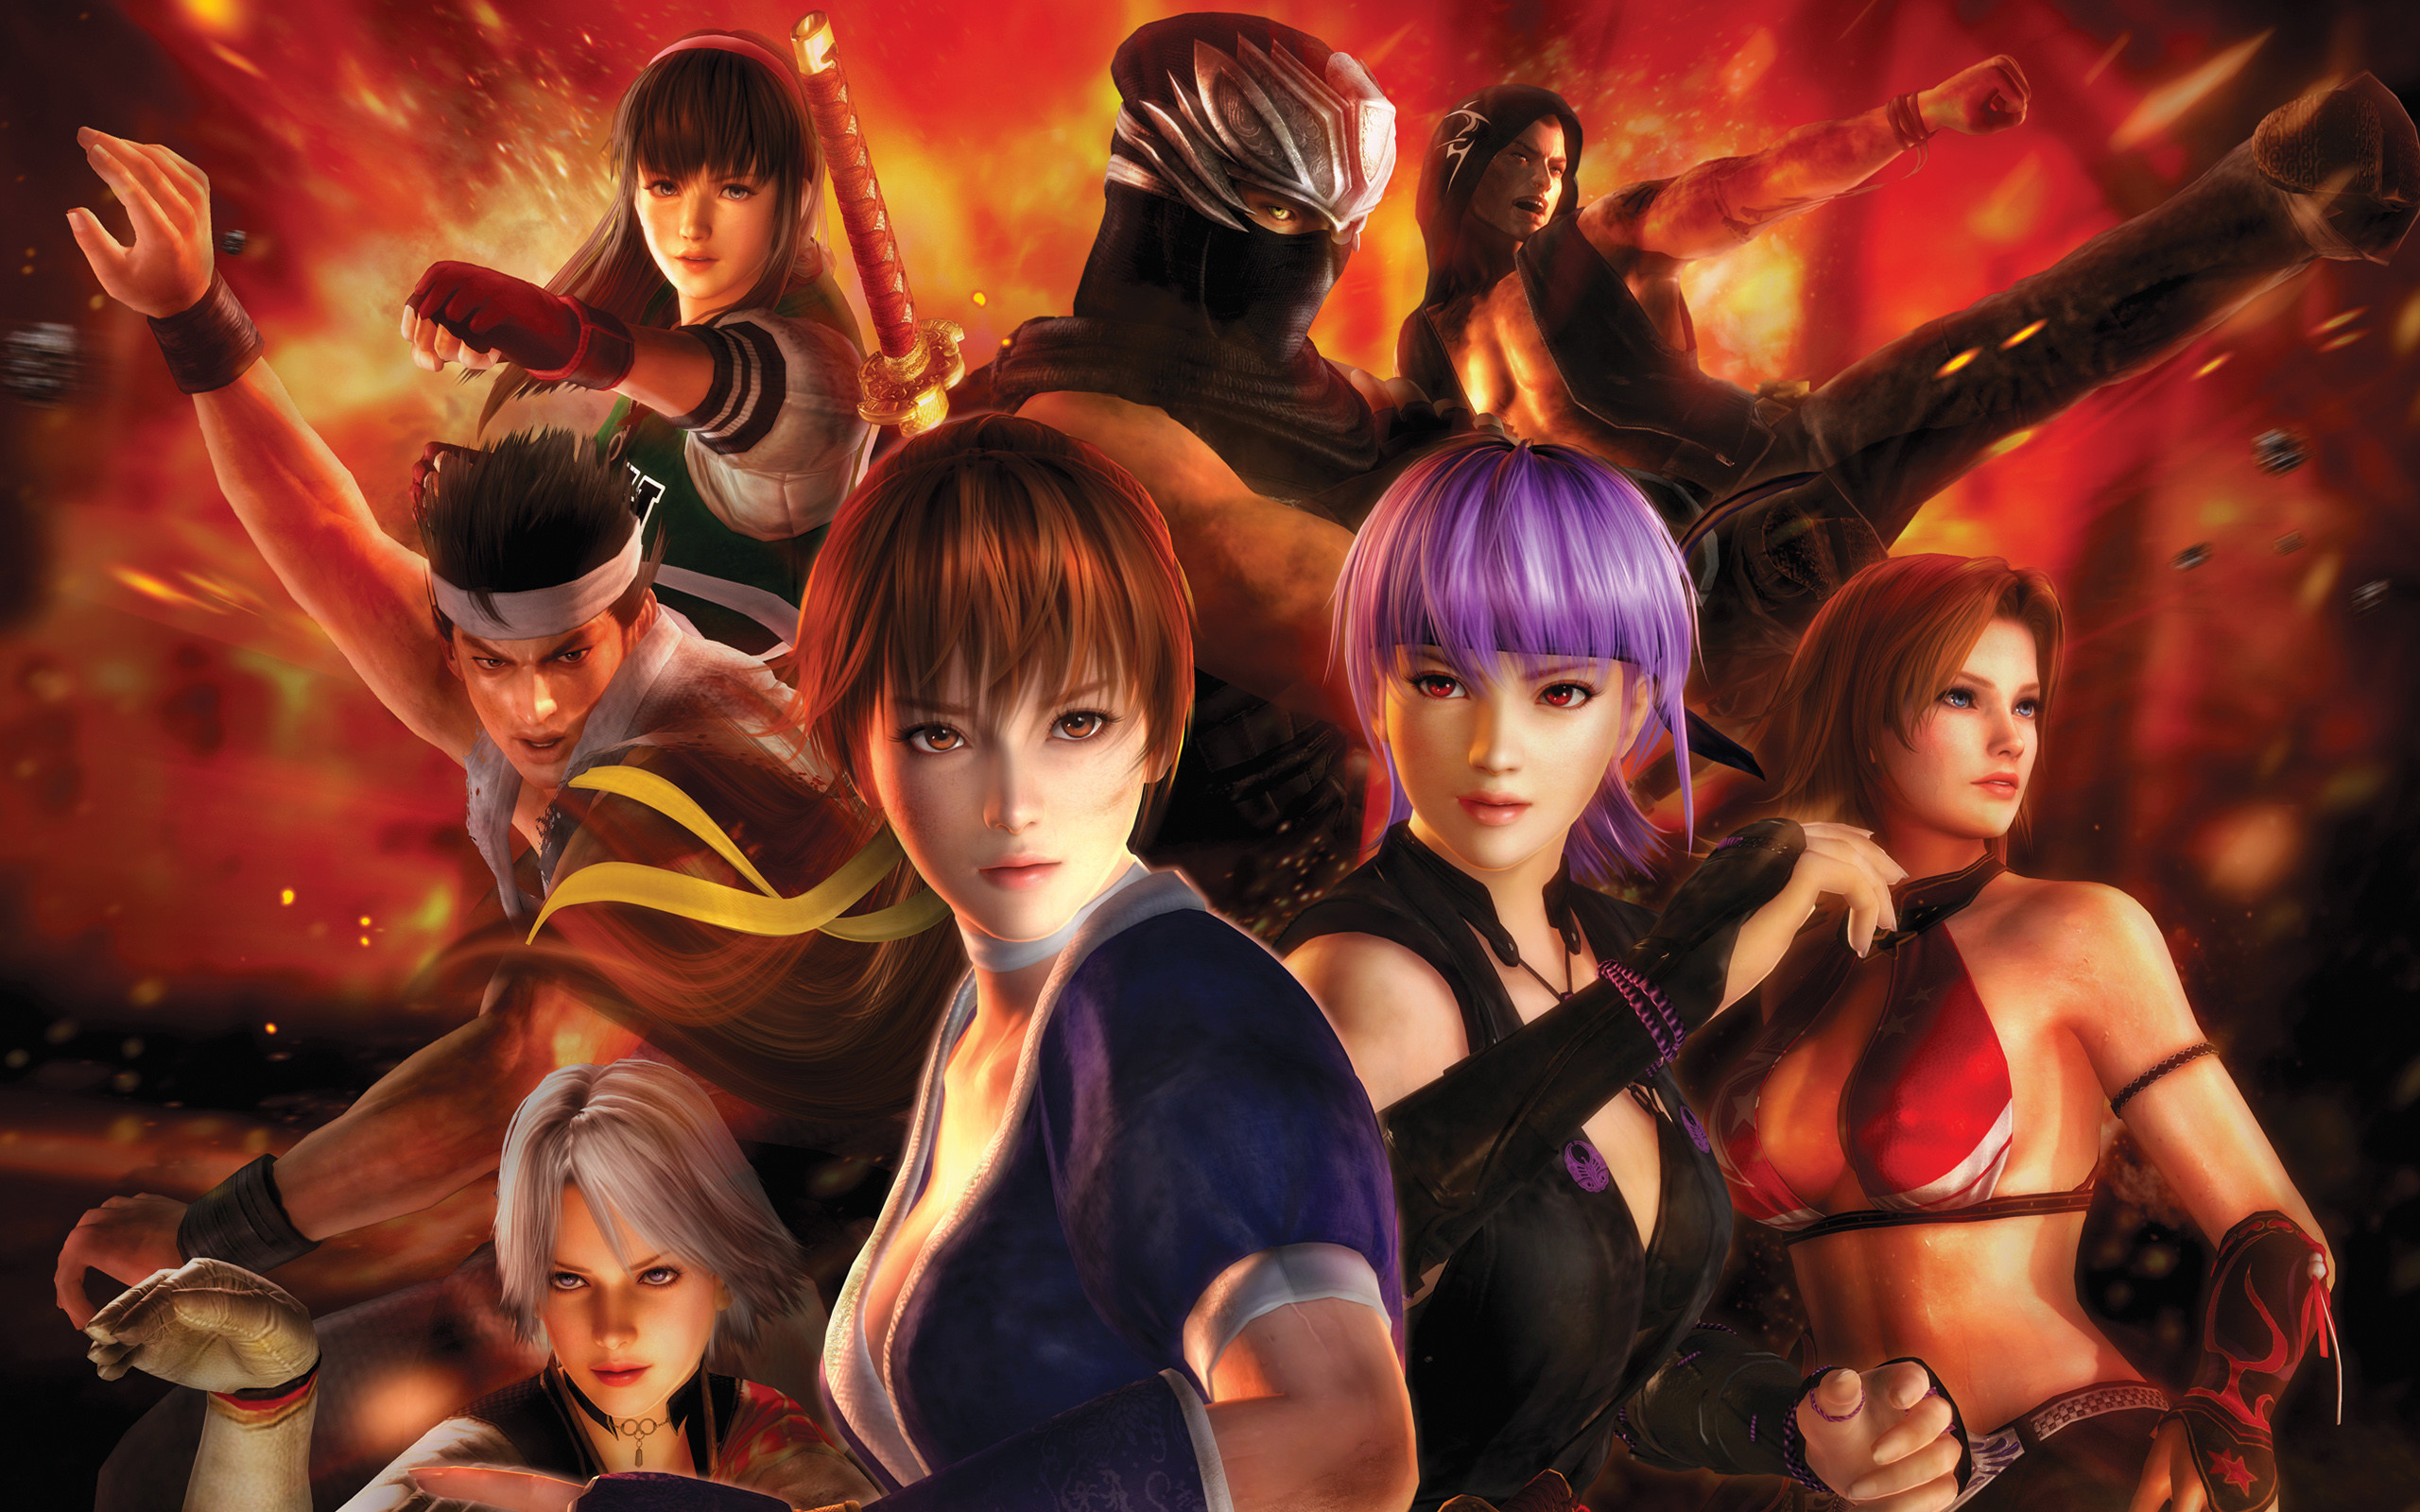 Dead Or Alive Wallpapers, New Dead Or Alive HD Widescreen Wallpapers